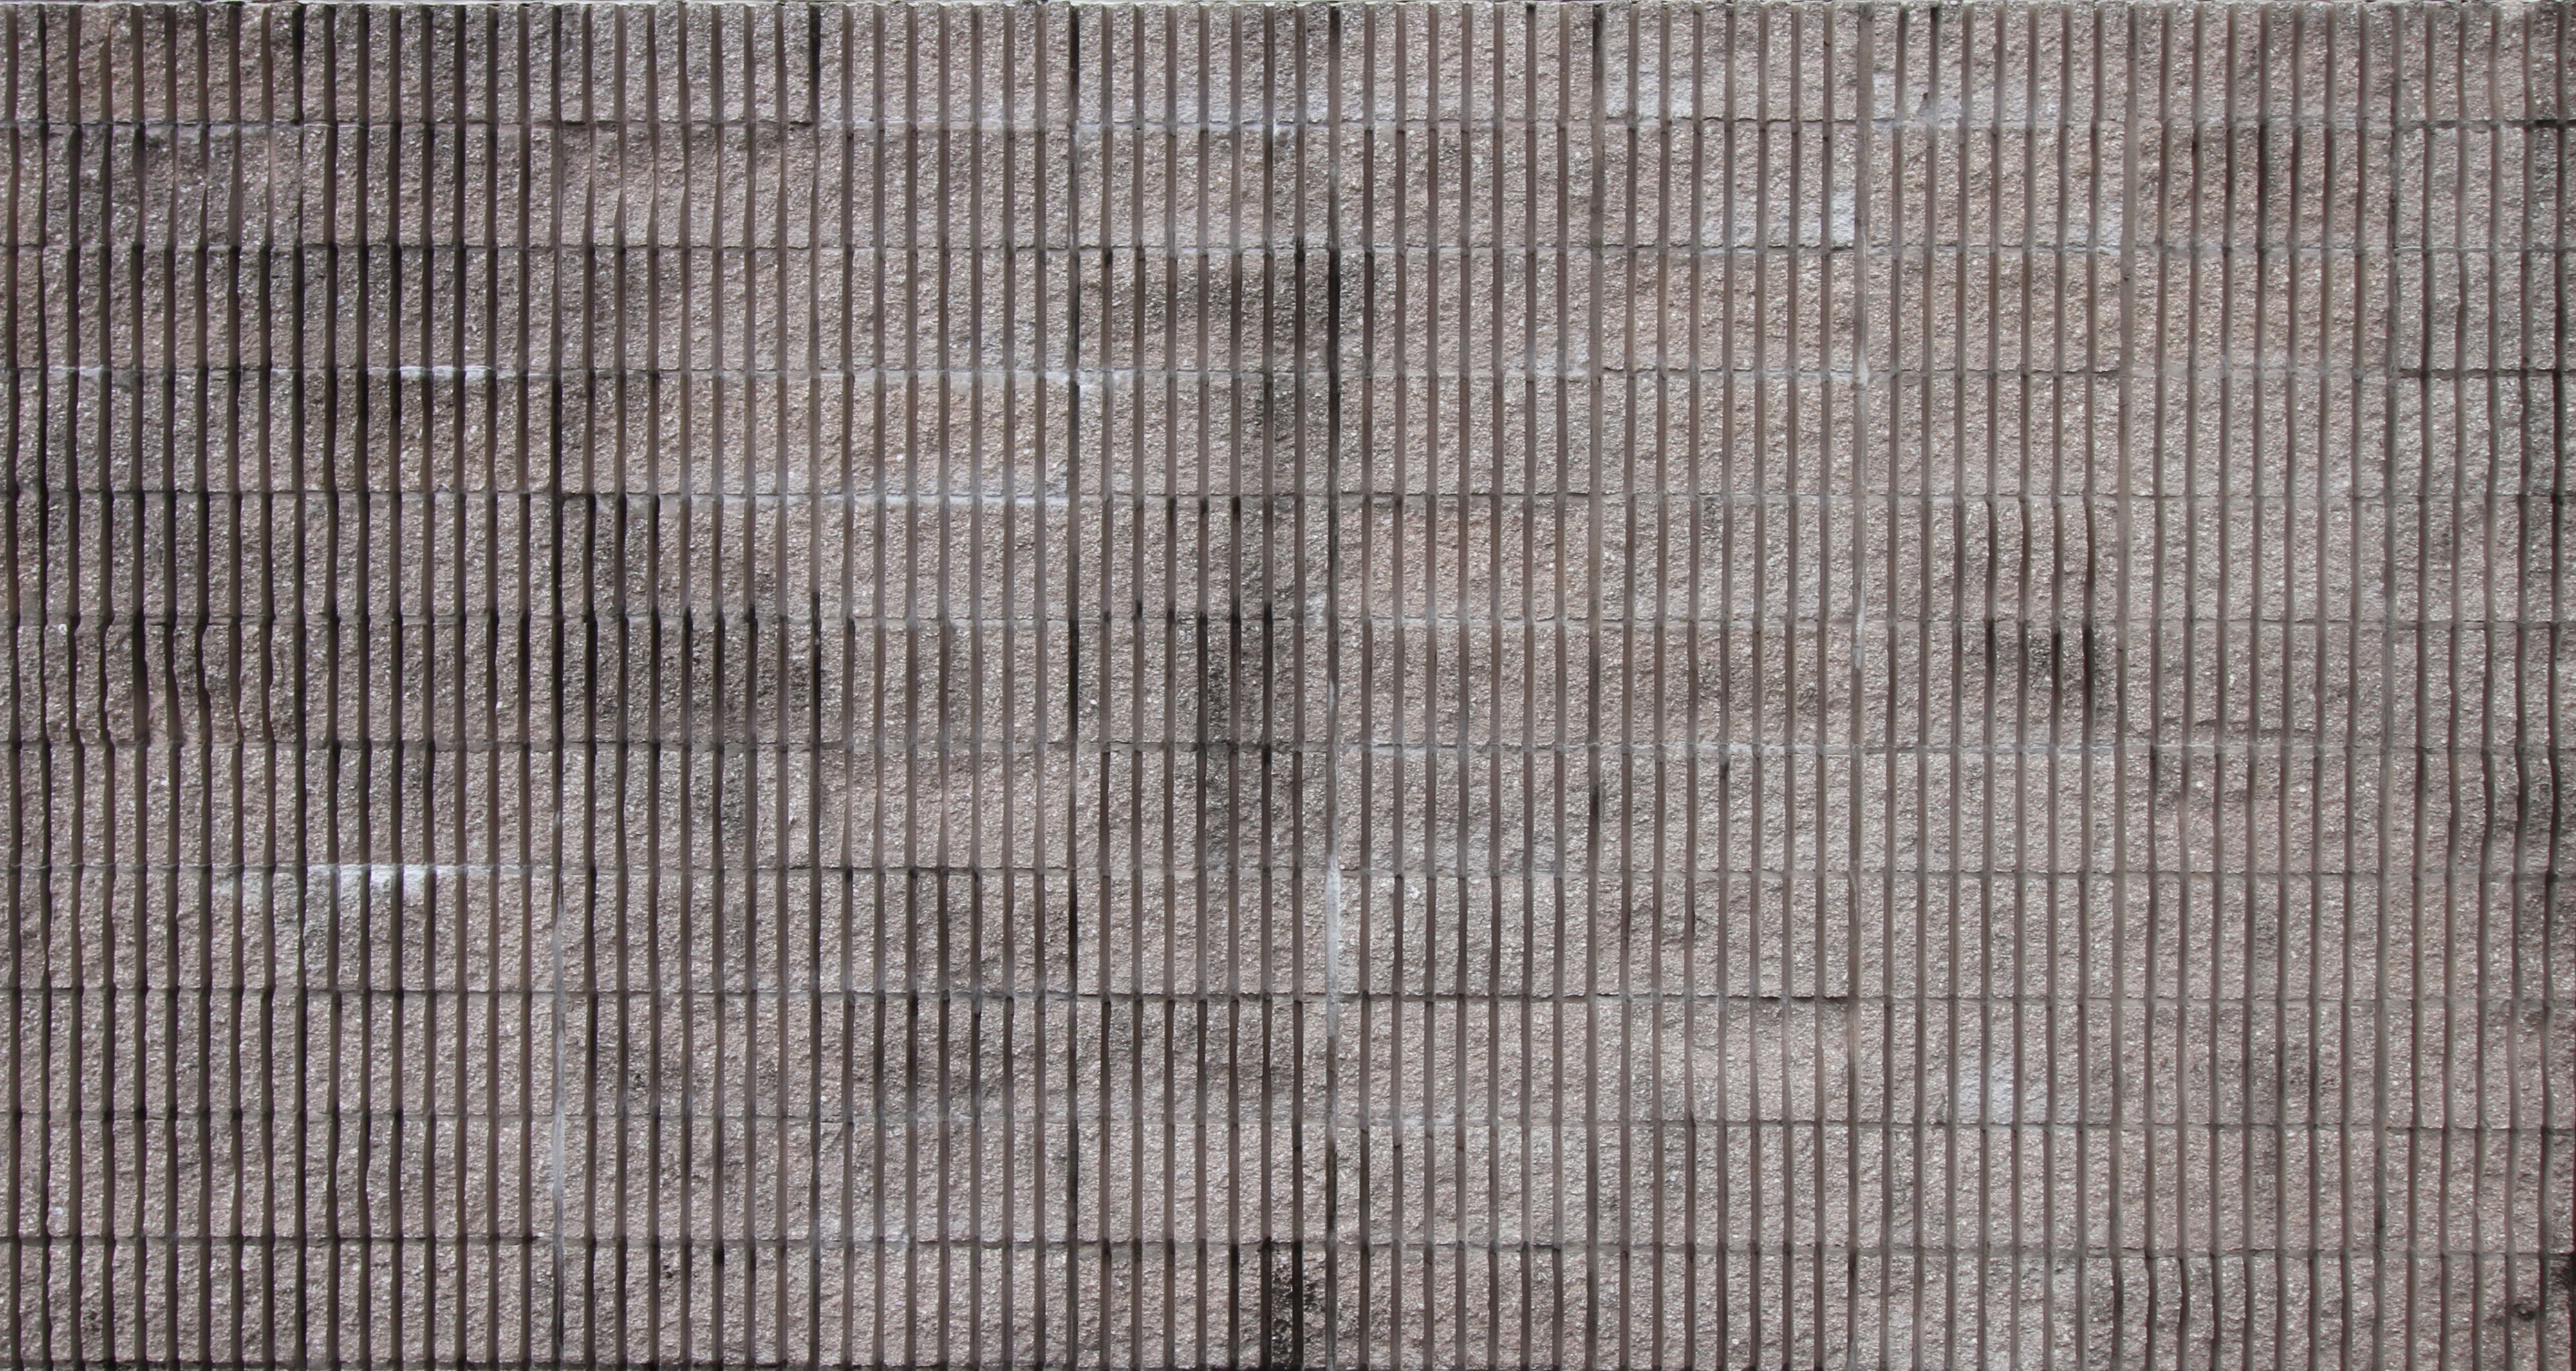 Grooved Concrete Wall Texture - 14Textures